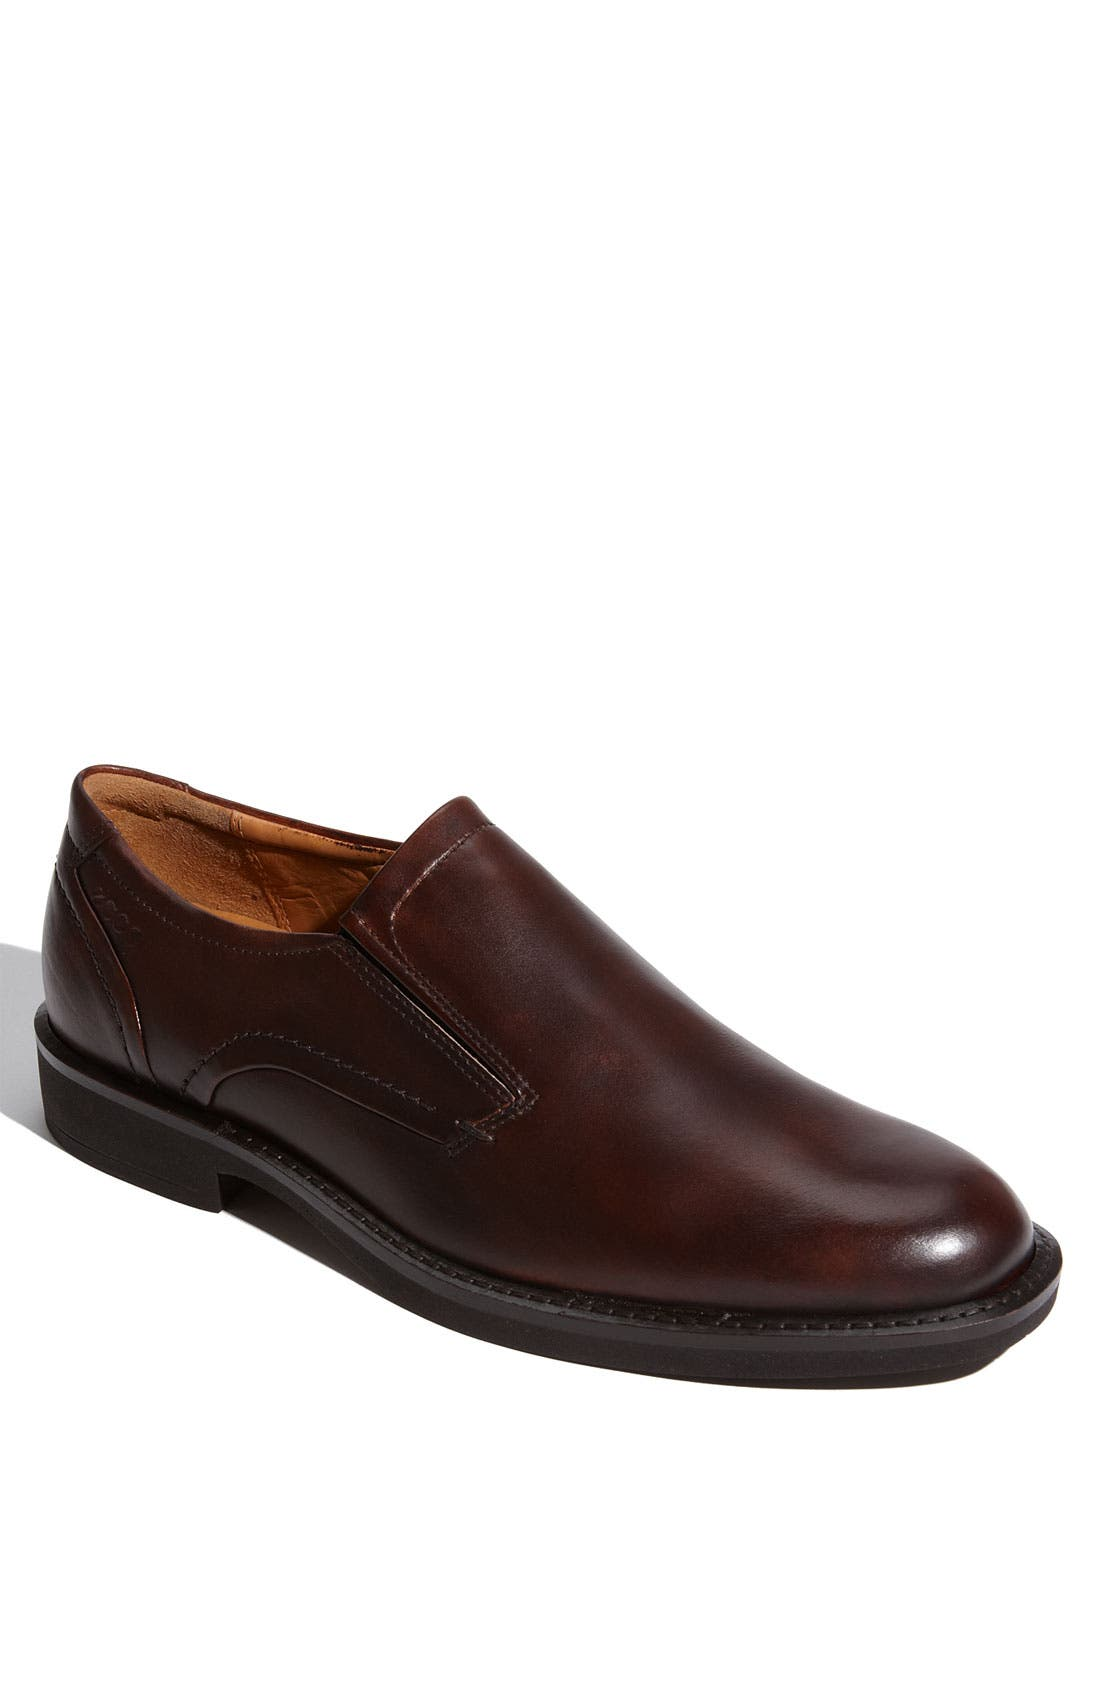 Alternate Image 1 Selected - ECCO 'Biarritz' Slip-On Loafer